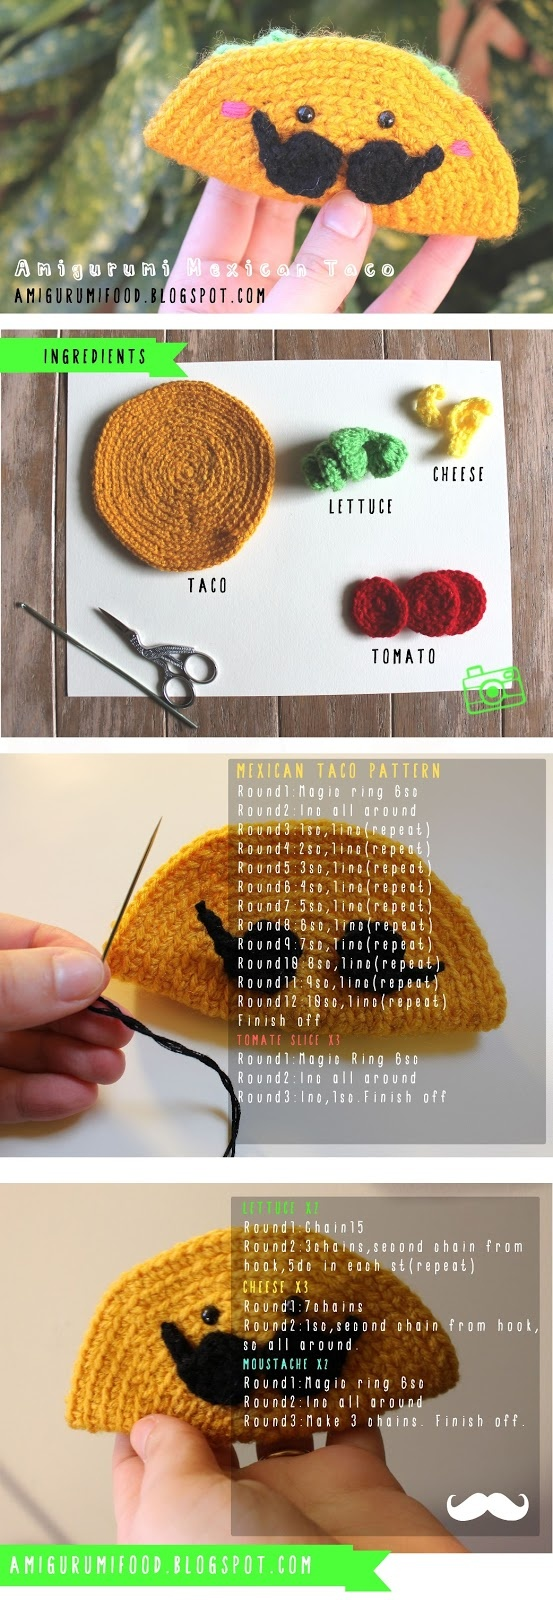 TACO MEXICANO - Amigurumi Food